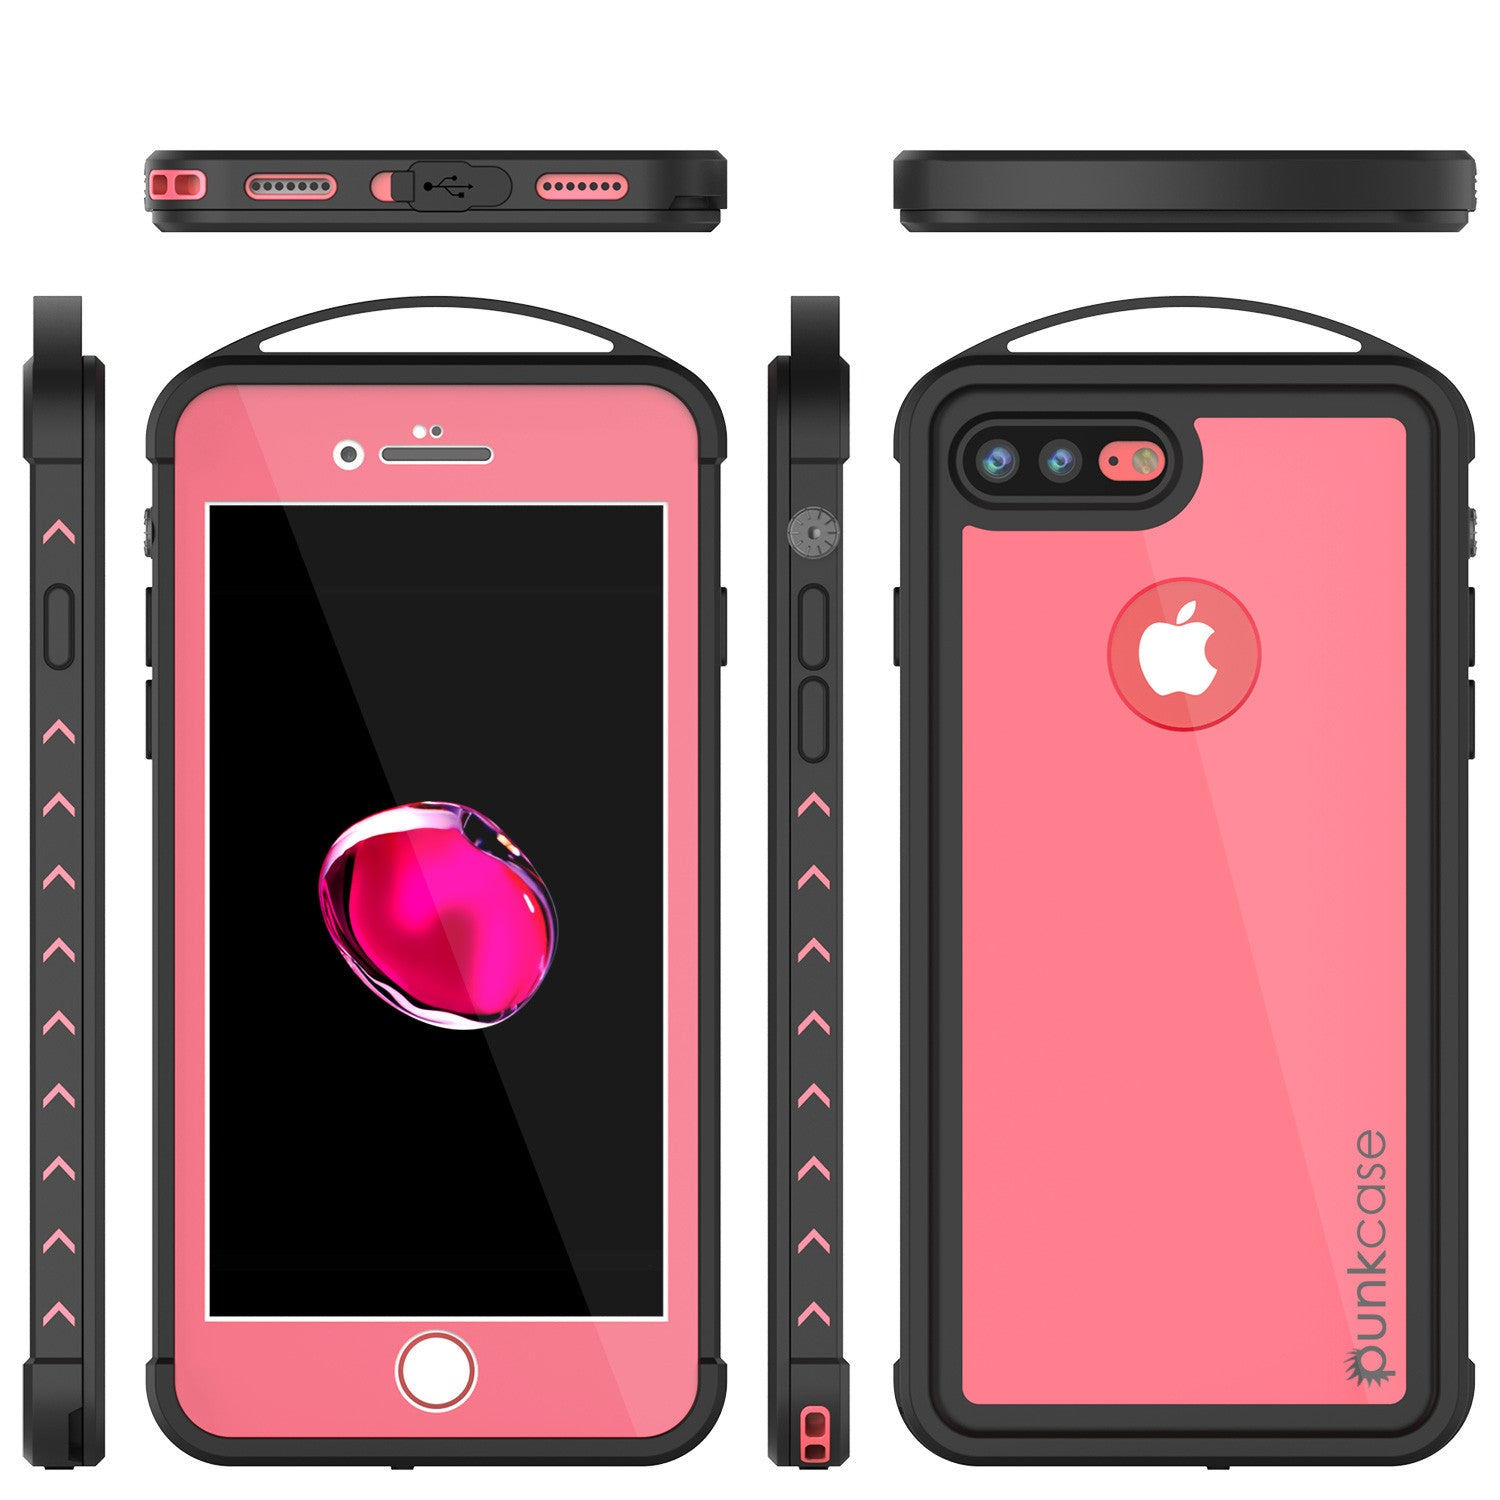 iPhone 7+ Plus Waterproof Case, Punkcase ALPINE Series, Pink | Heavy Duty Armor Cover